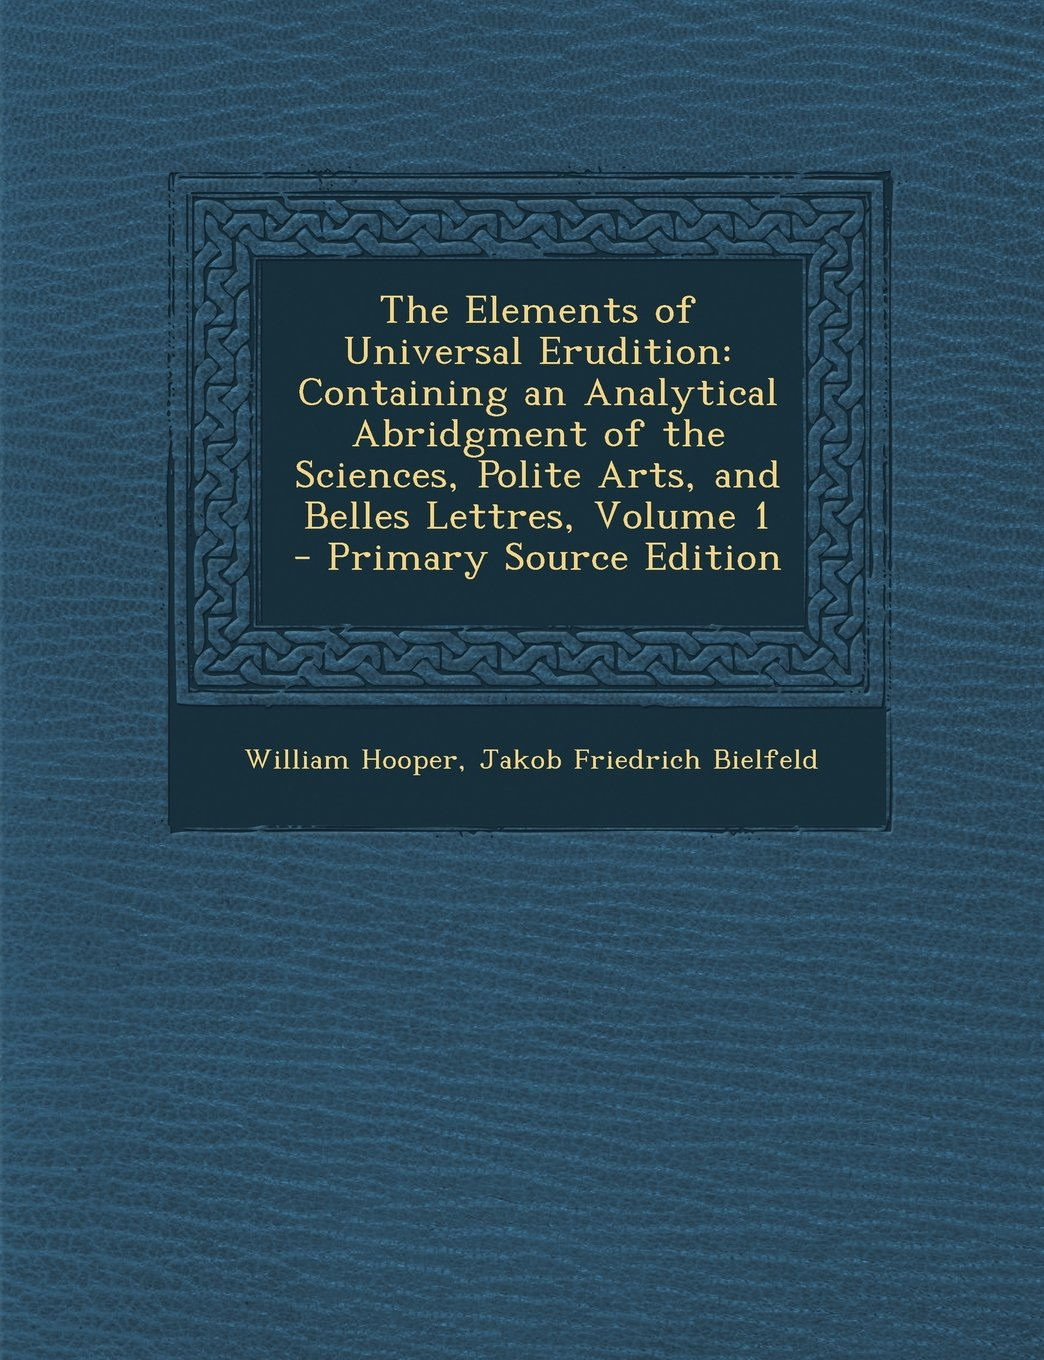 Download The Elements of Universal Erudition: Containing an Analytical Abridgment of the Sciences, Polite Arts, and Belles Lettres, Volume 1 - Primary Source E PDF